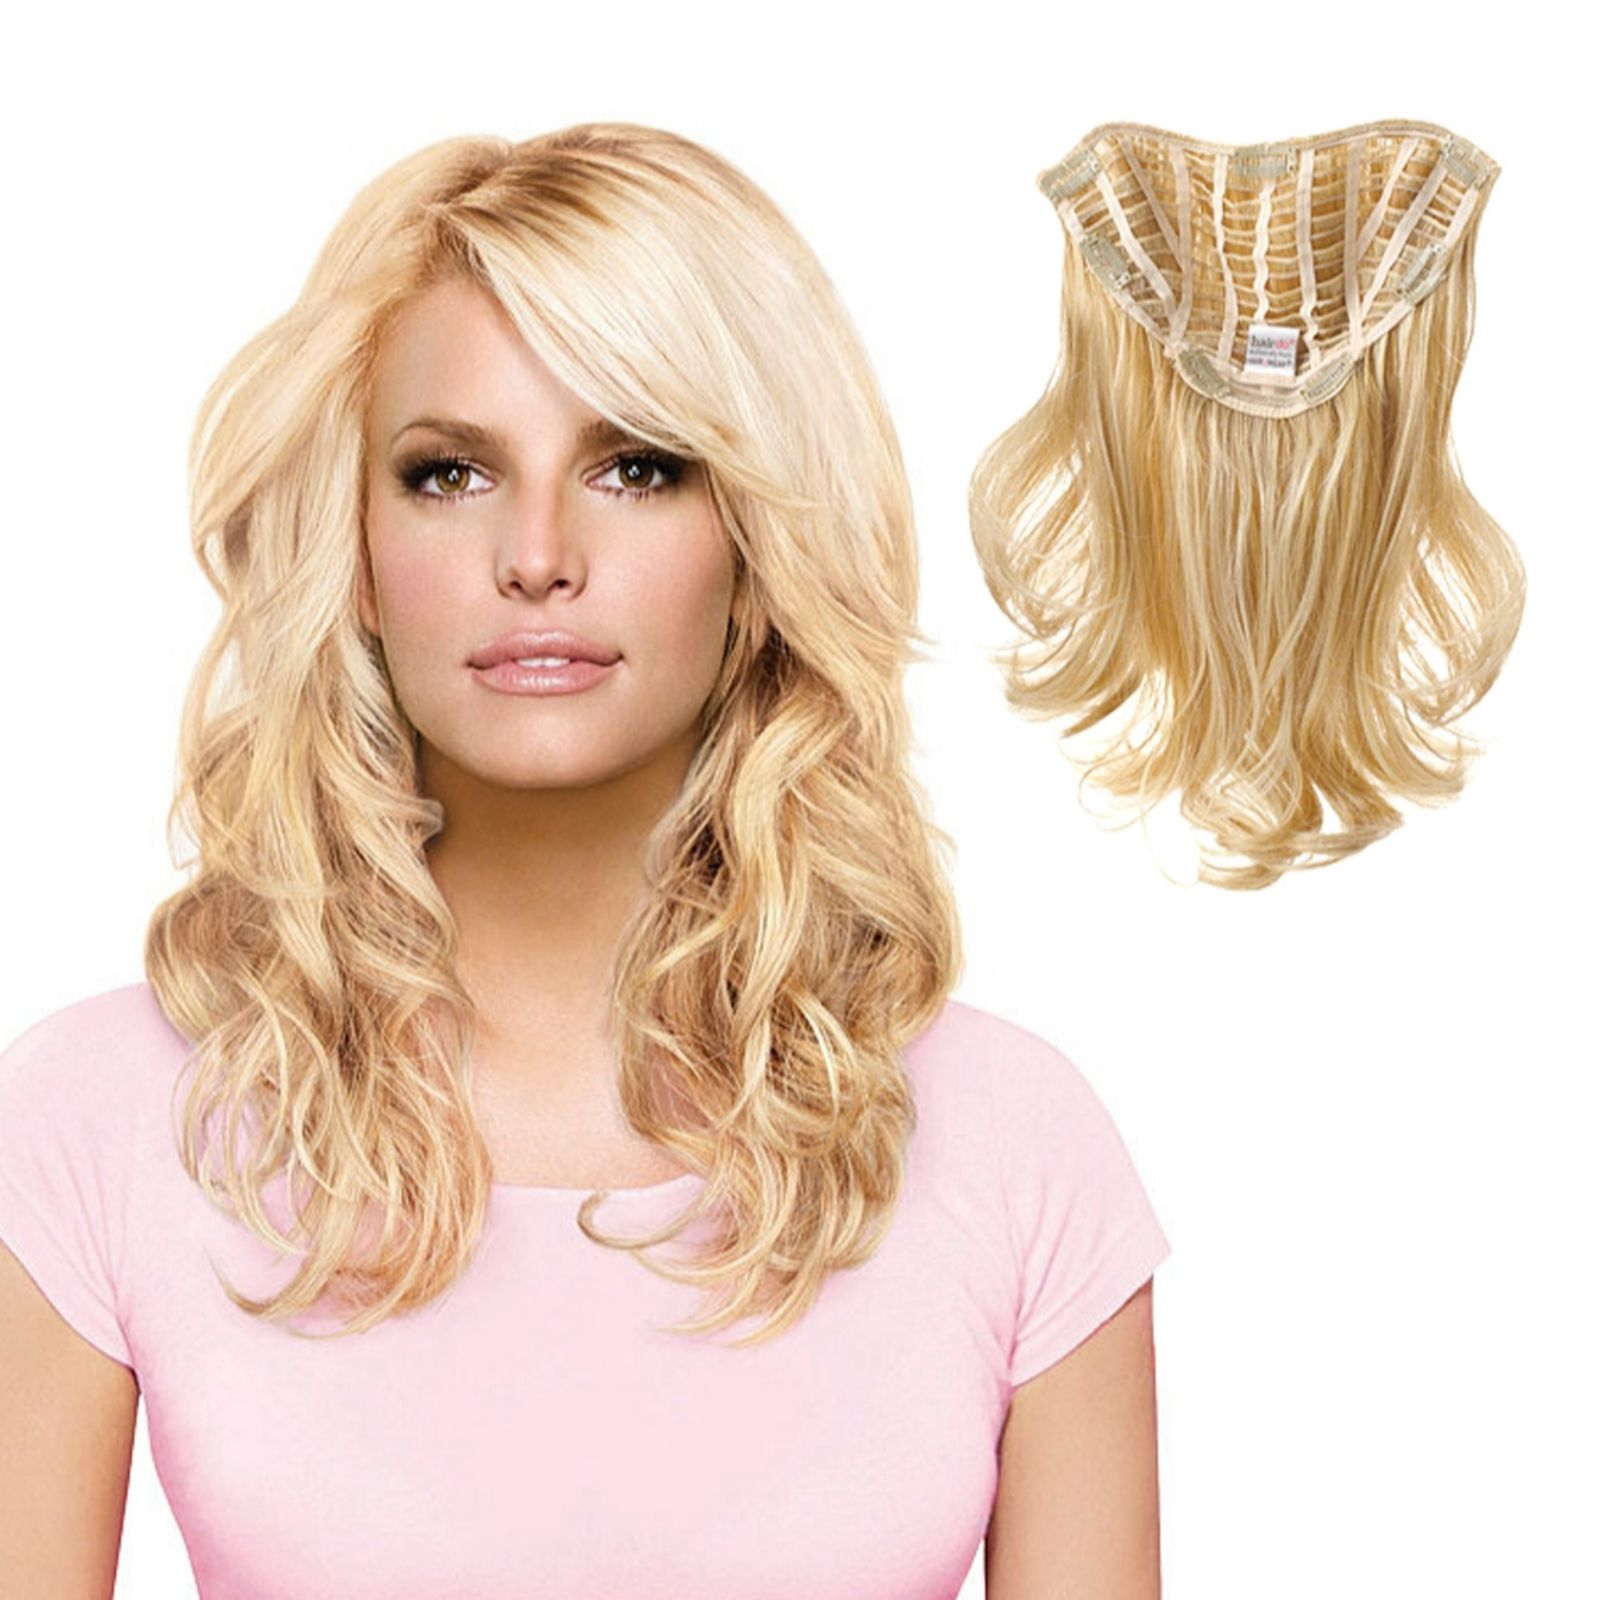 Hairdo By Ken Paves Jessica Simpson 20 True2life Wavy Hair